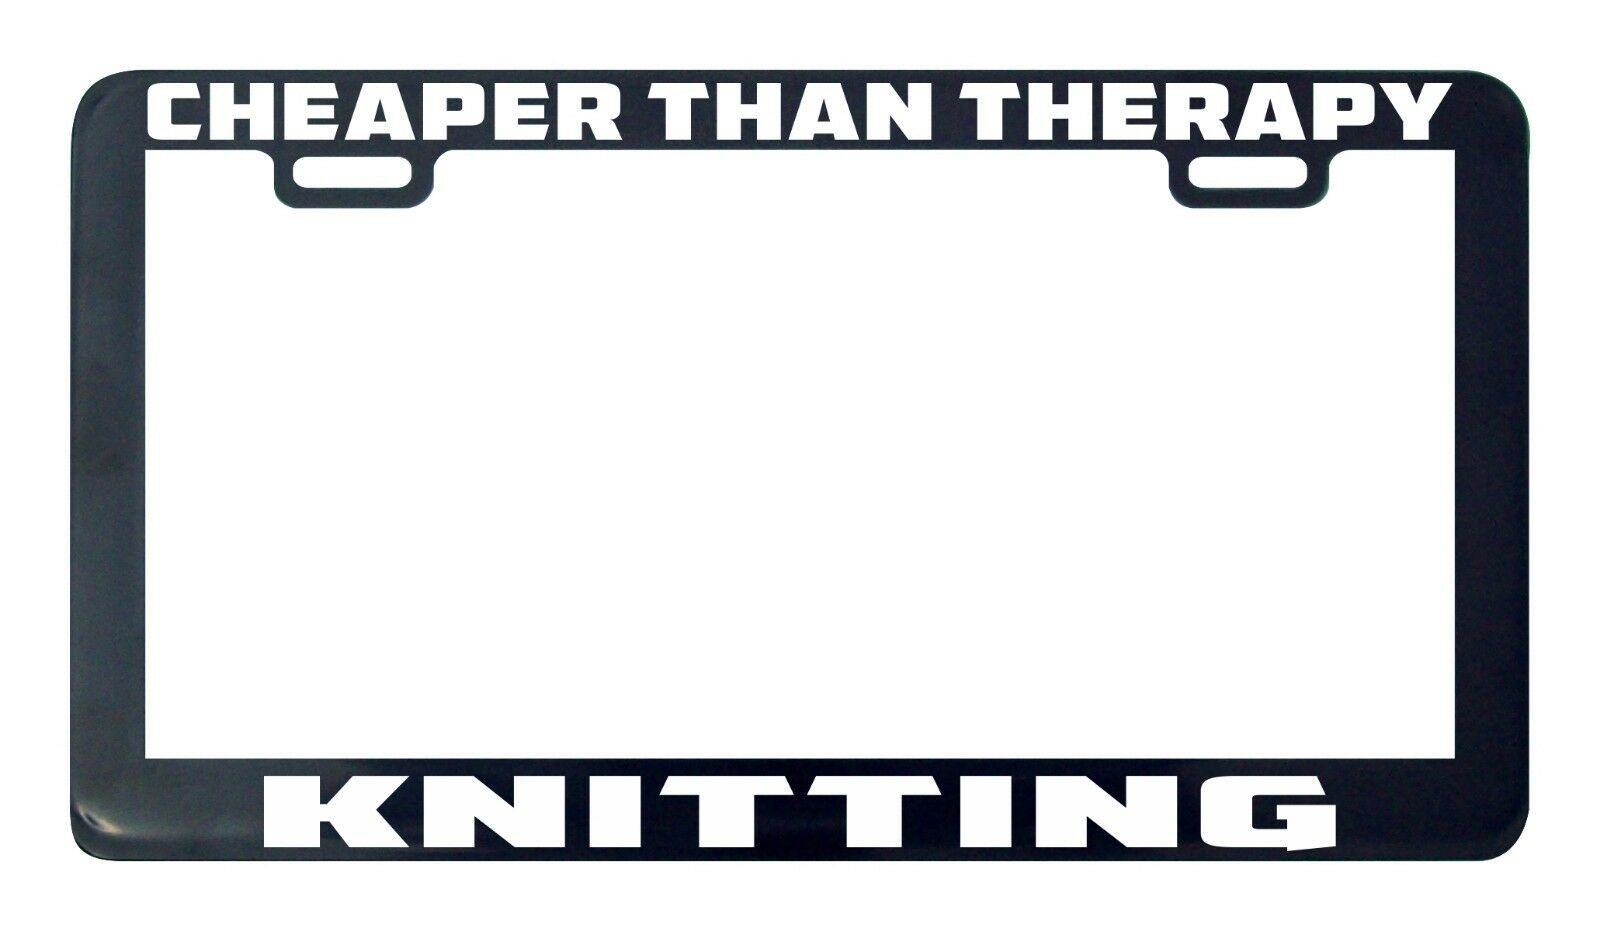 Primary image for Cheaper than therapy knitting license plate frame holder